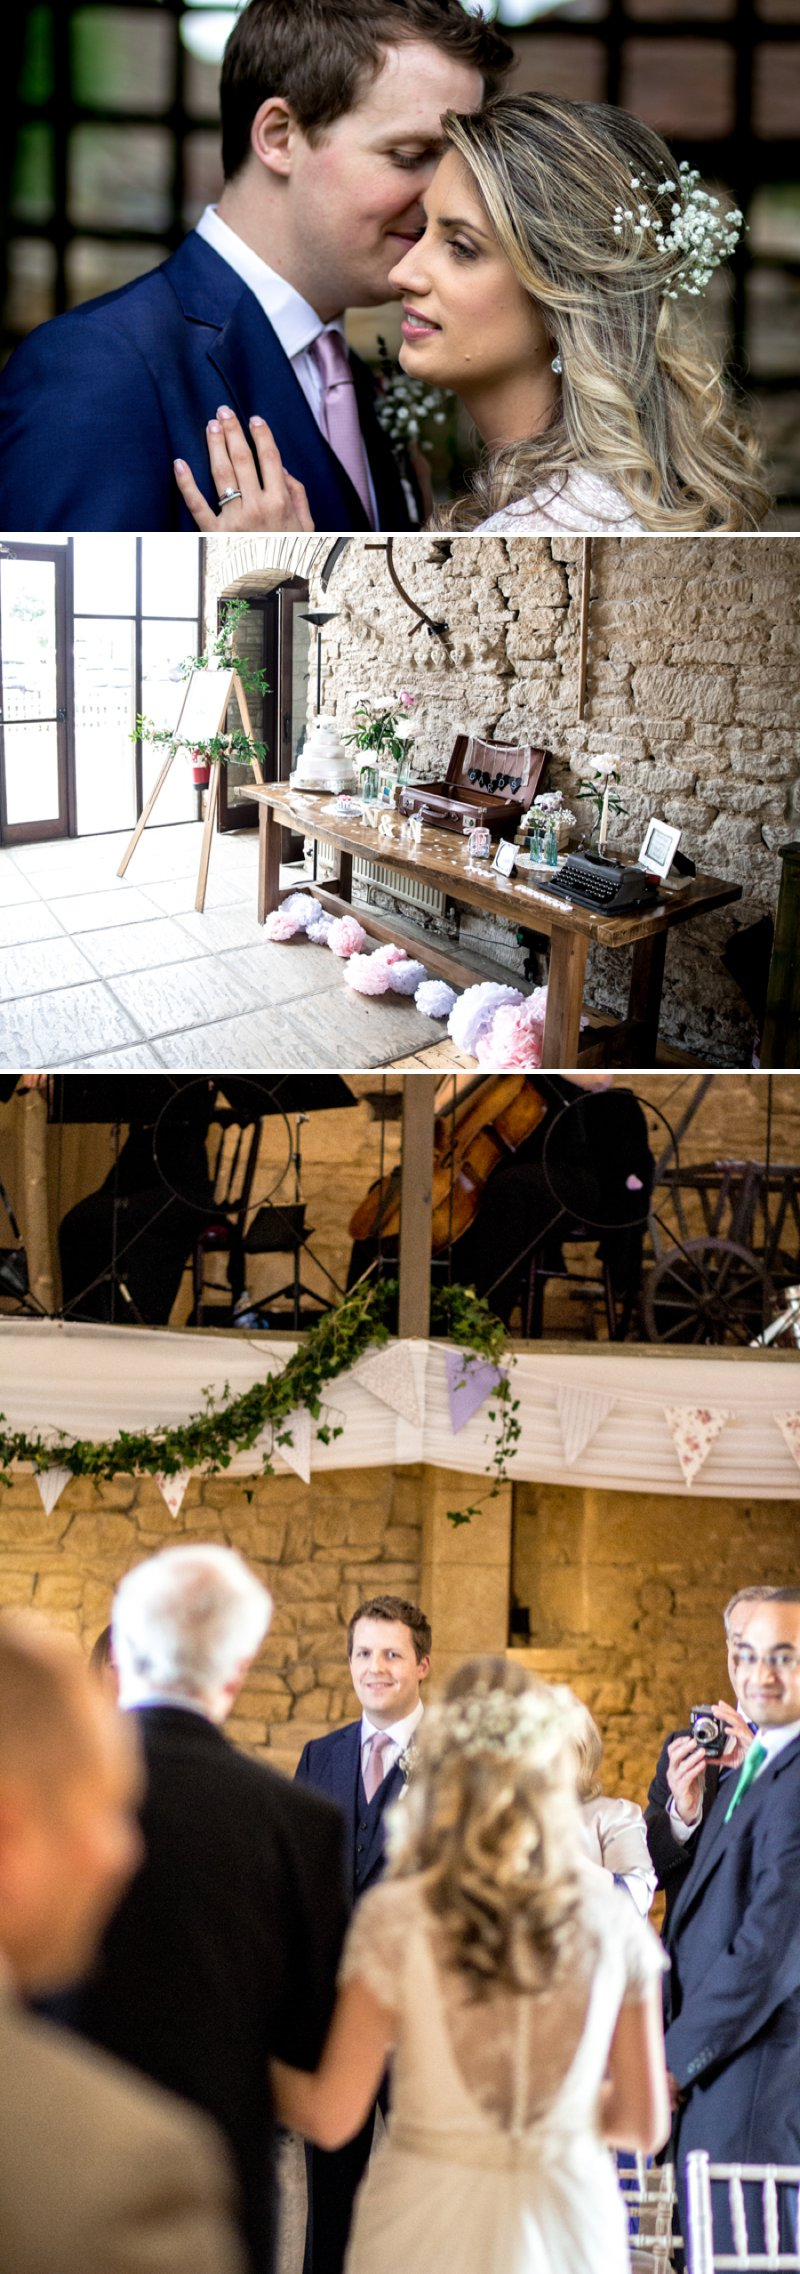 A Pretty Barn Wedding In The Cotswolds At The Great Tythe Barn With Bride In Pronovias And Groom In Reiss With Decor From The Vintage Hire And Images From Richard Jones Photography1